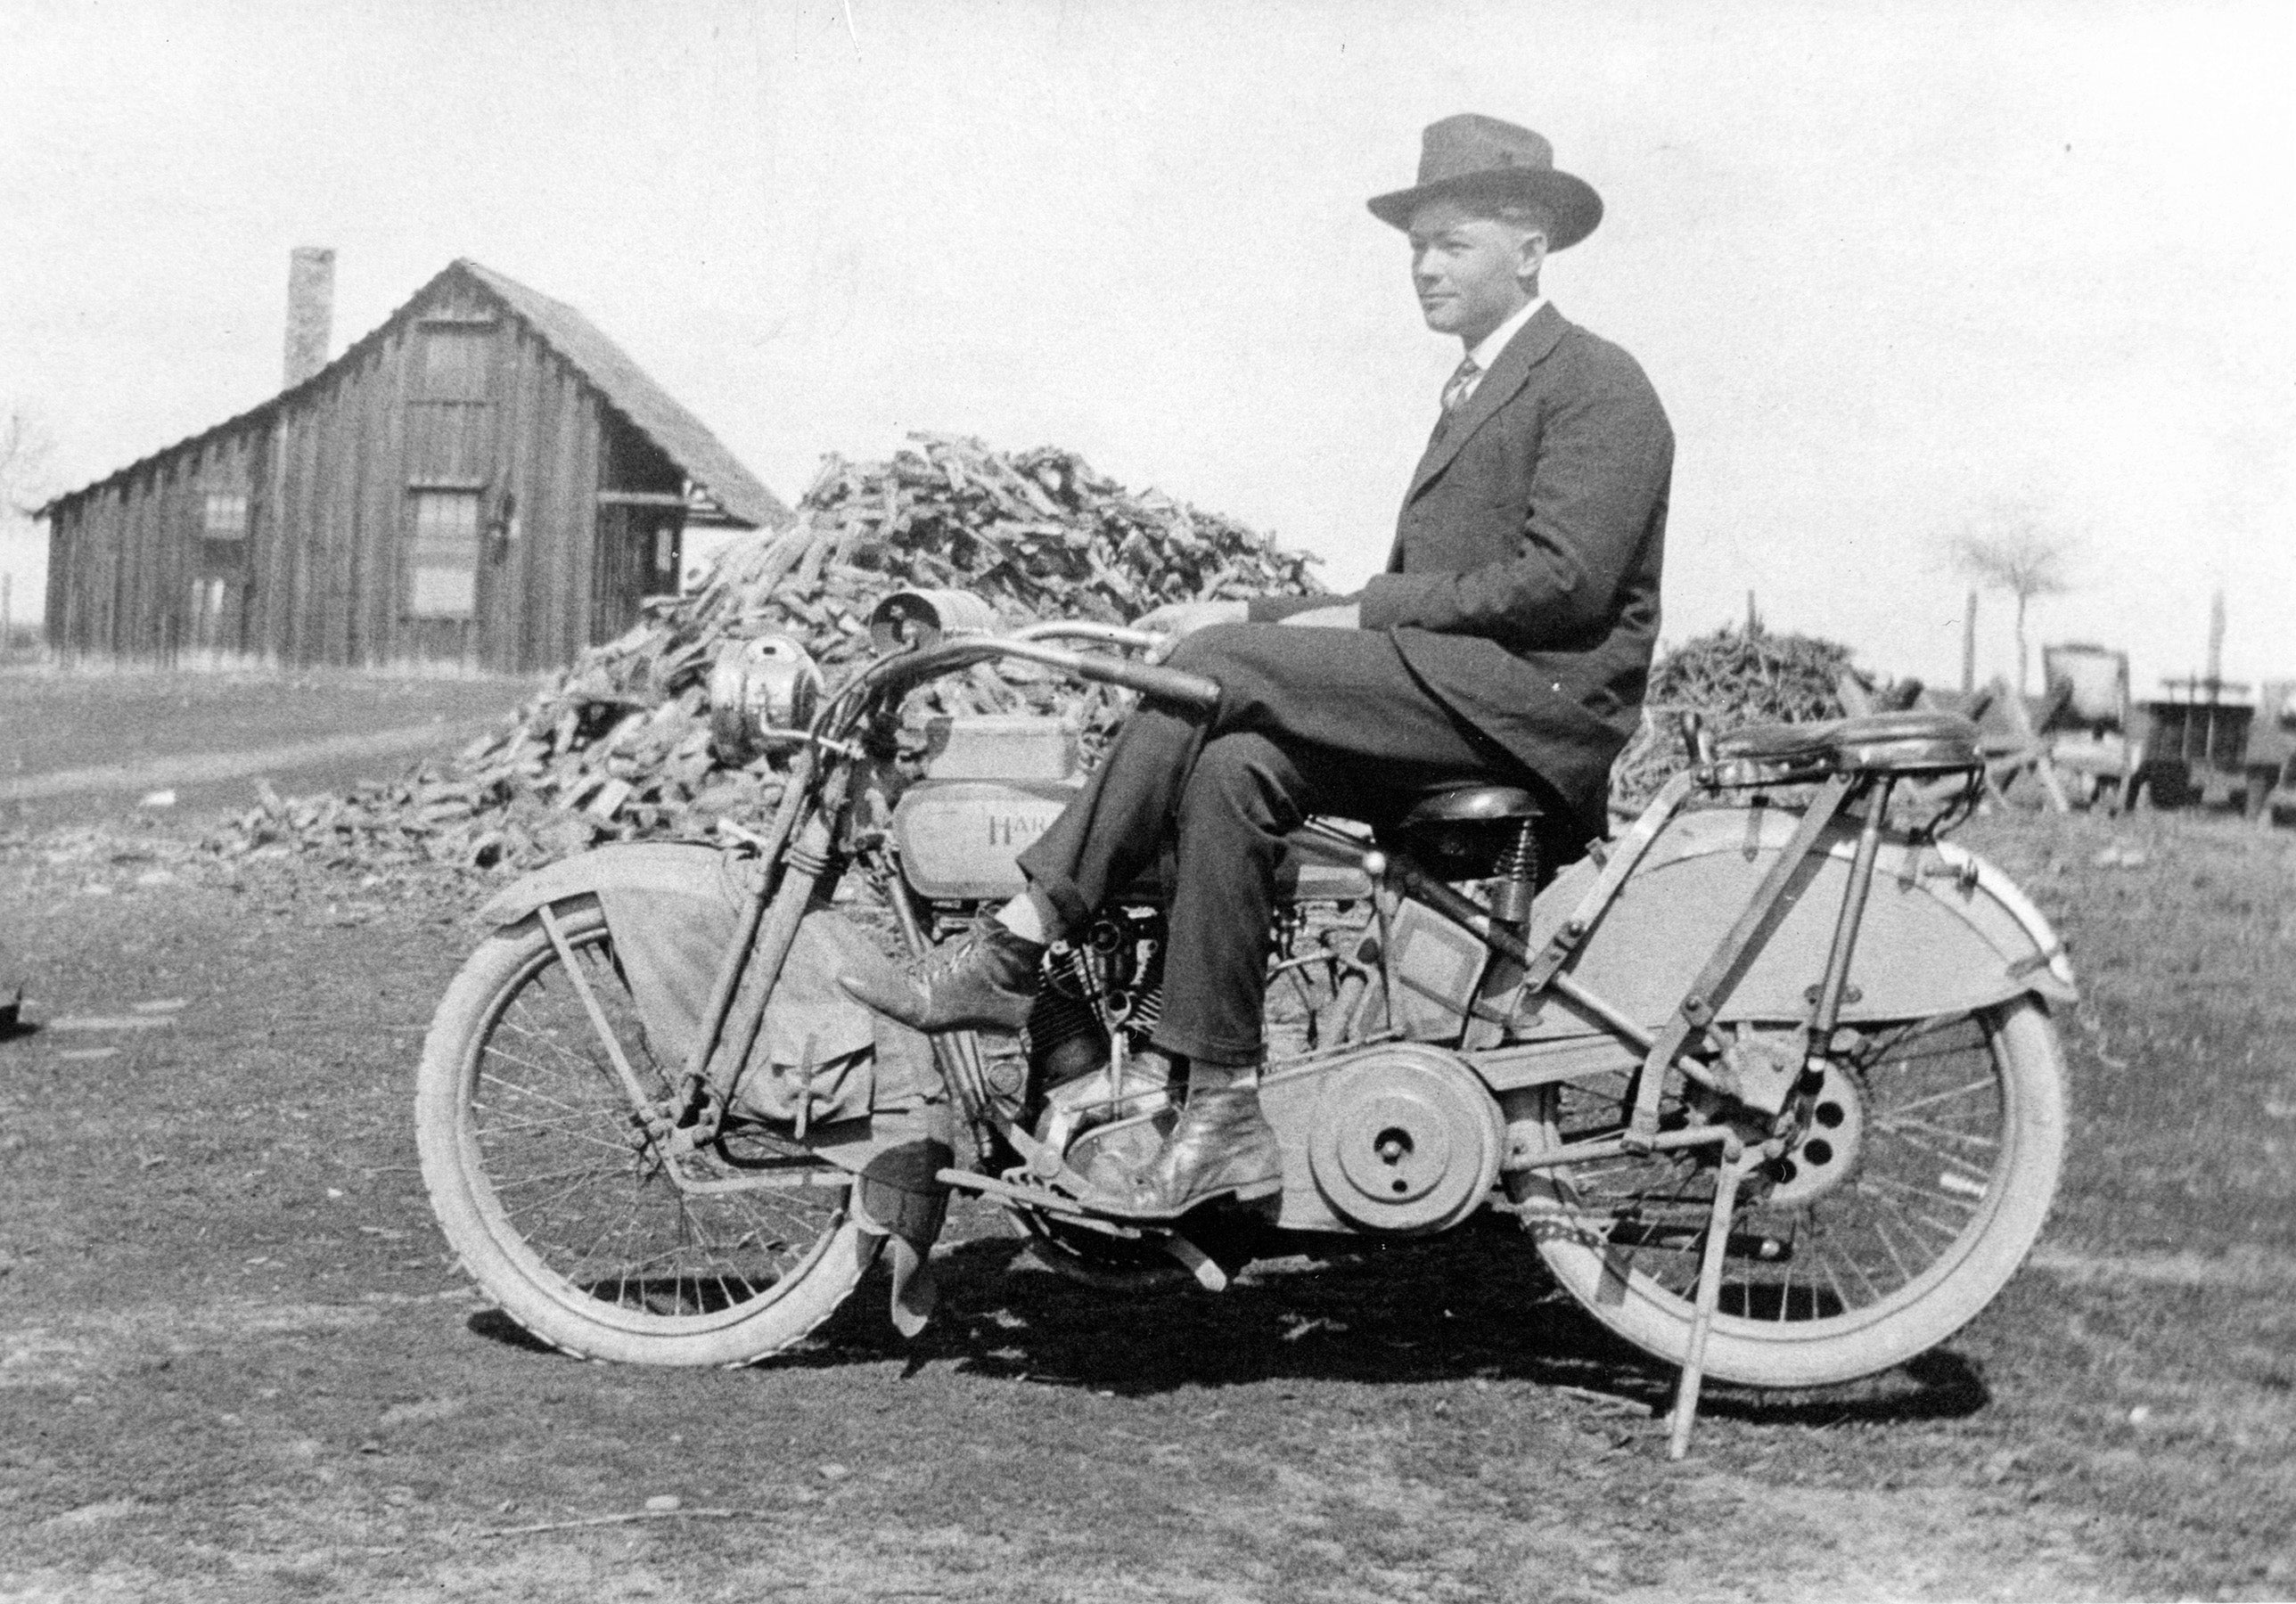 Antone Riebschlager on his Harley Davidson motorcycle in Clovis at Fran and Theresia Meisetschlagers farm on the southside of Shaw, circa 1915. Courtesy Judy Wathen-Farris